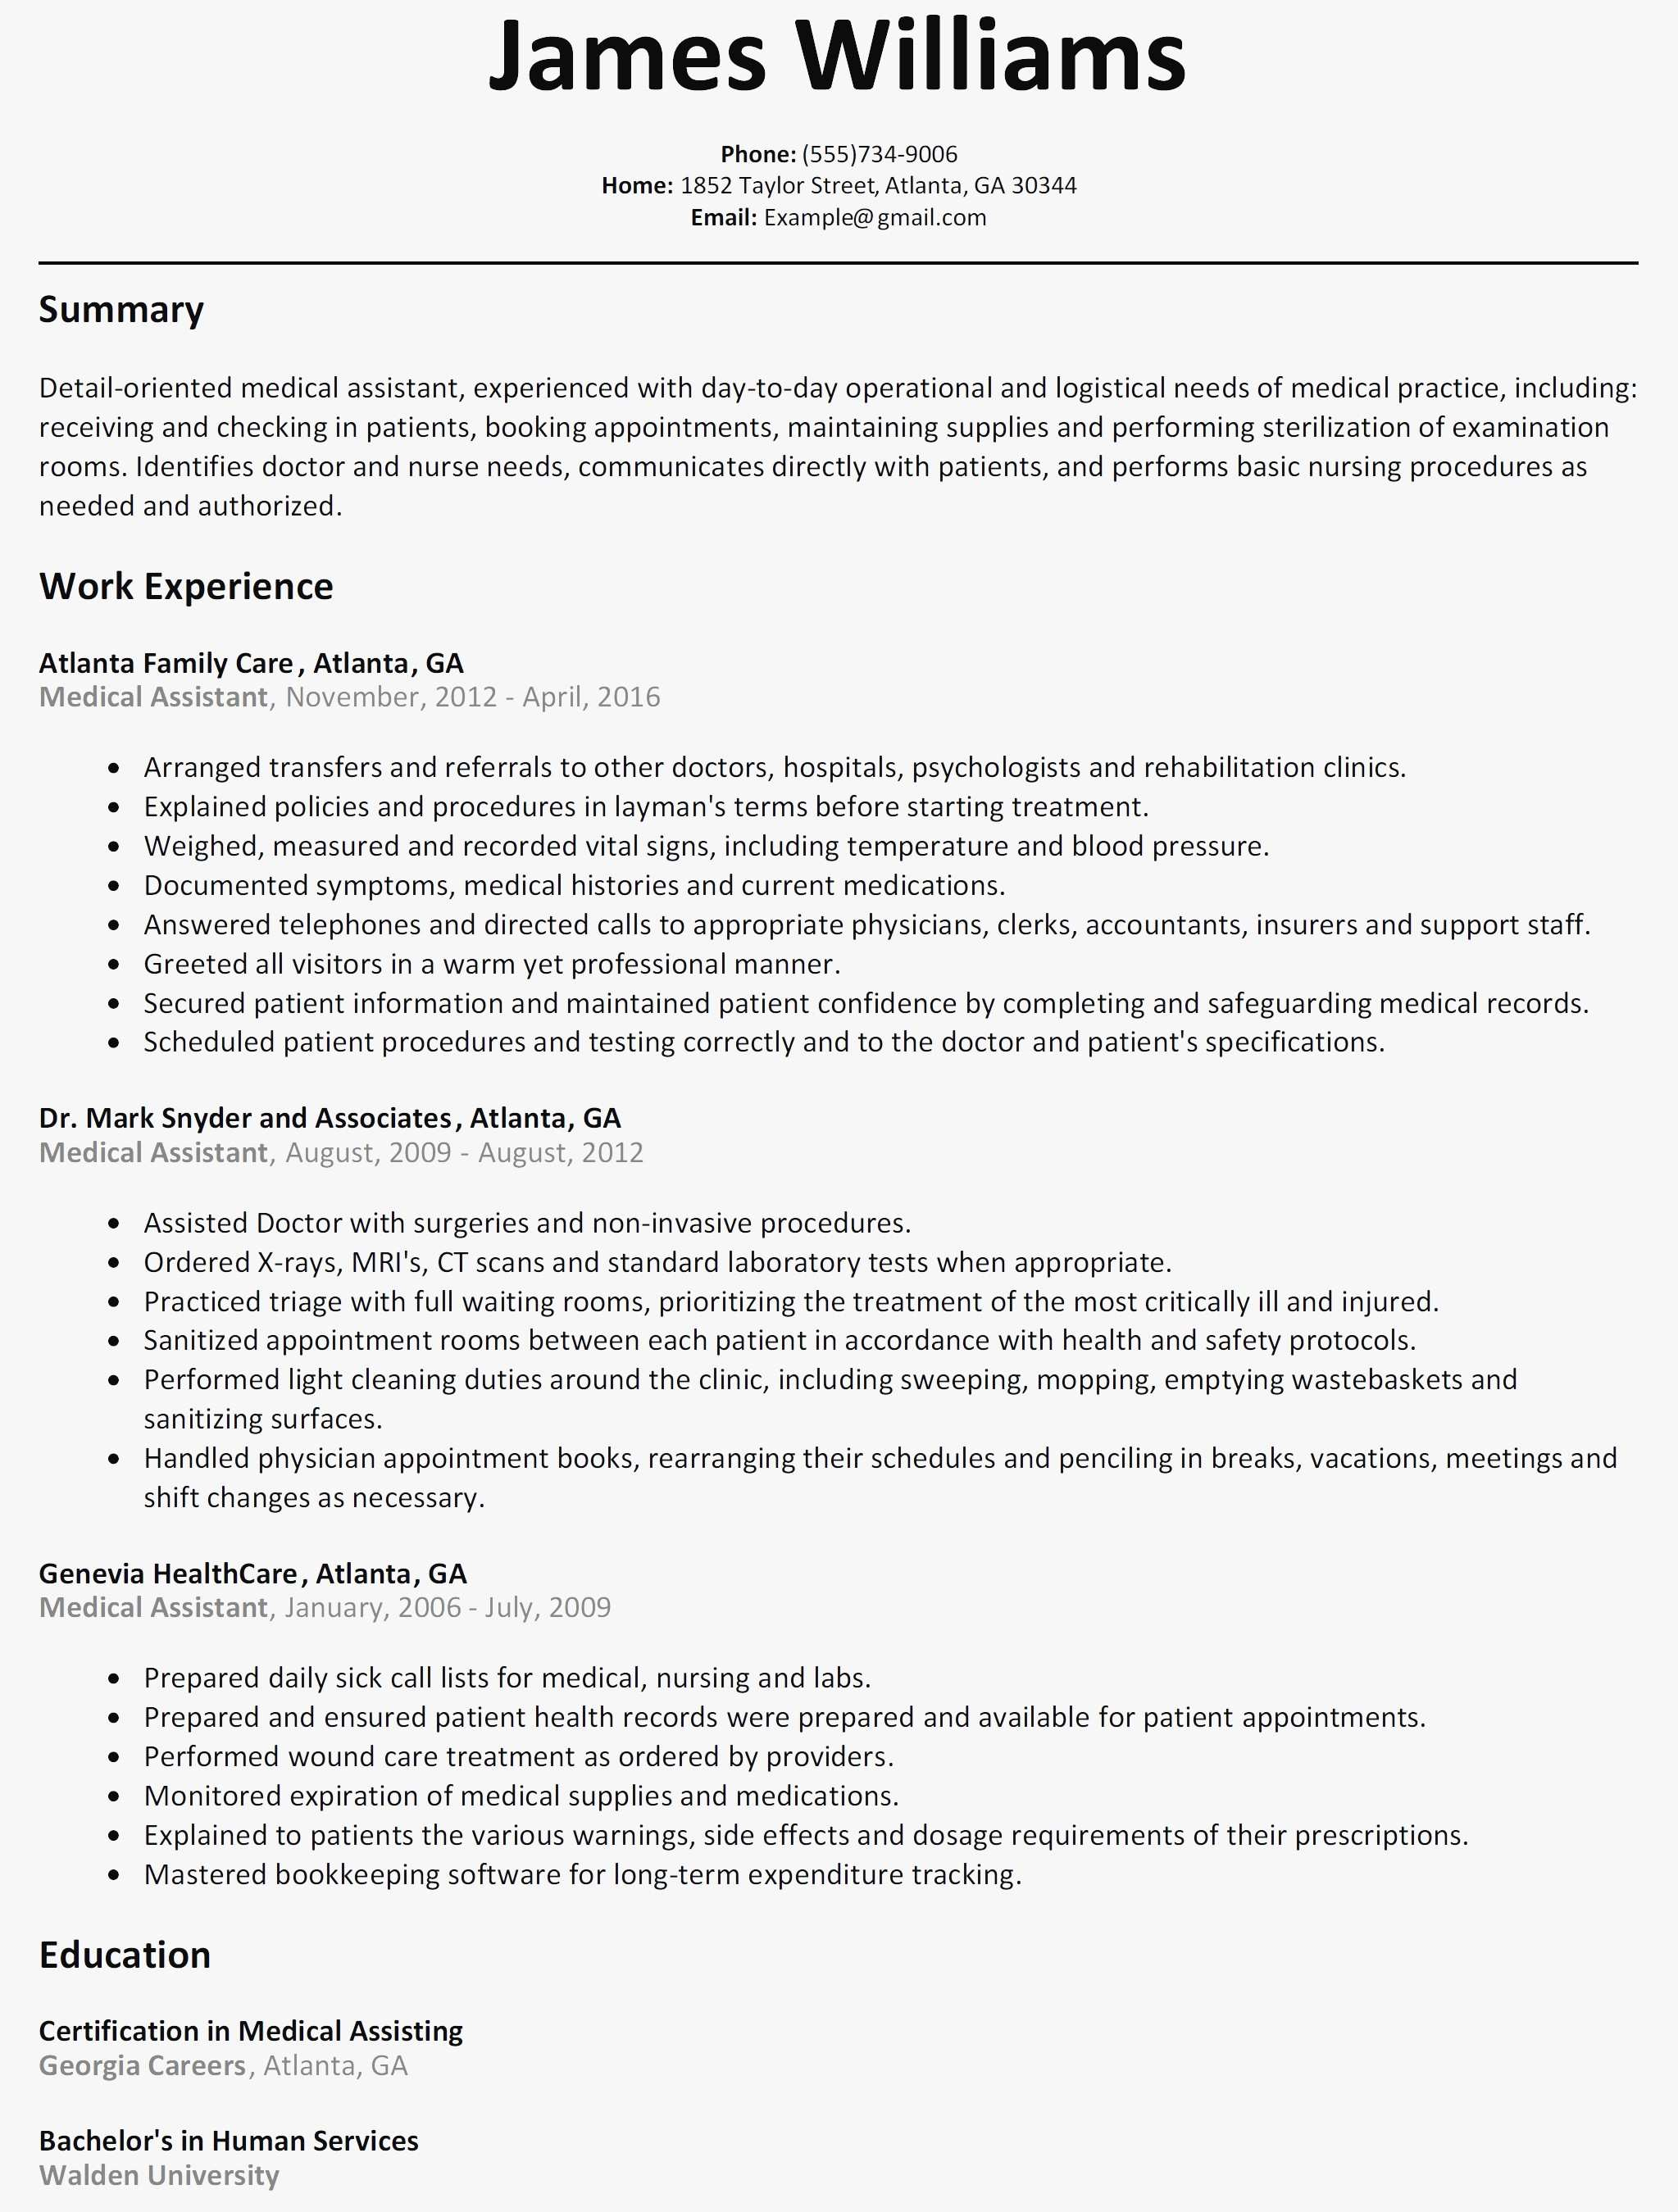 nursing resume template word Collection-Nursing Resume Template Word Awesome Simple HTML Email Template Creator Awesome Nursing Resume Builder 7-m